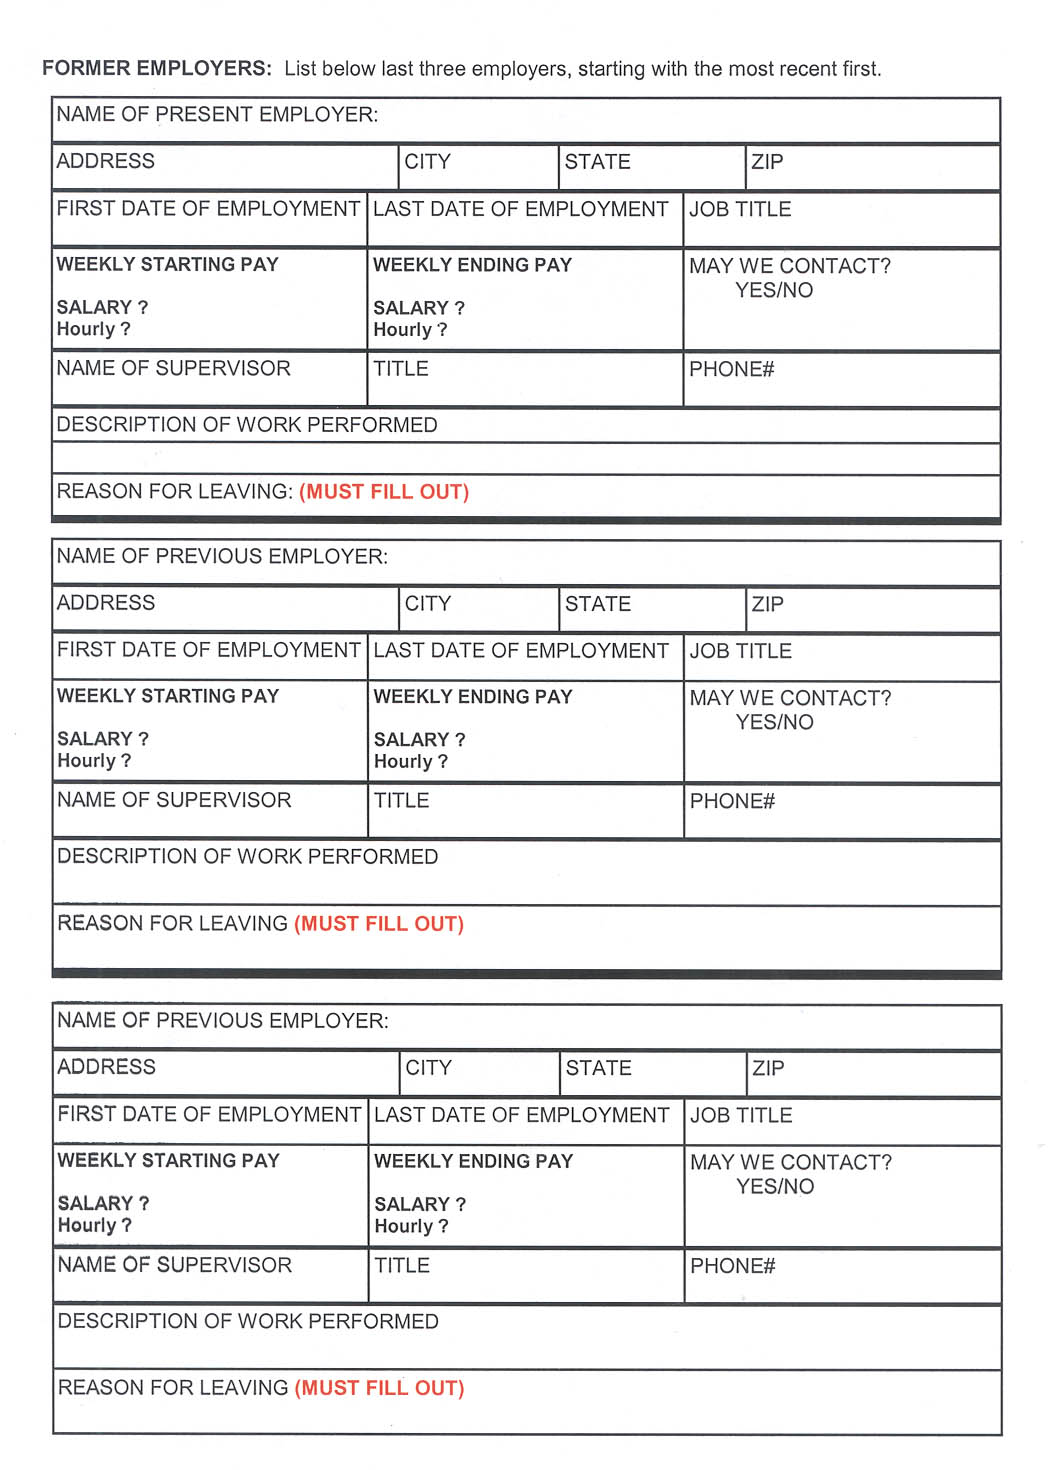 transfield services employment application form